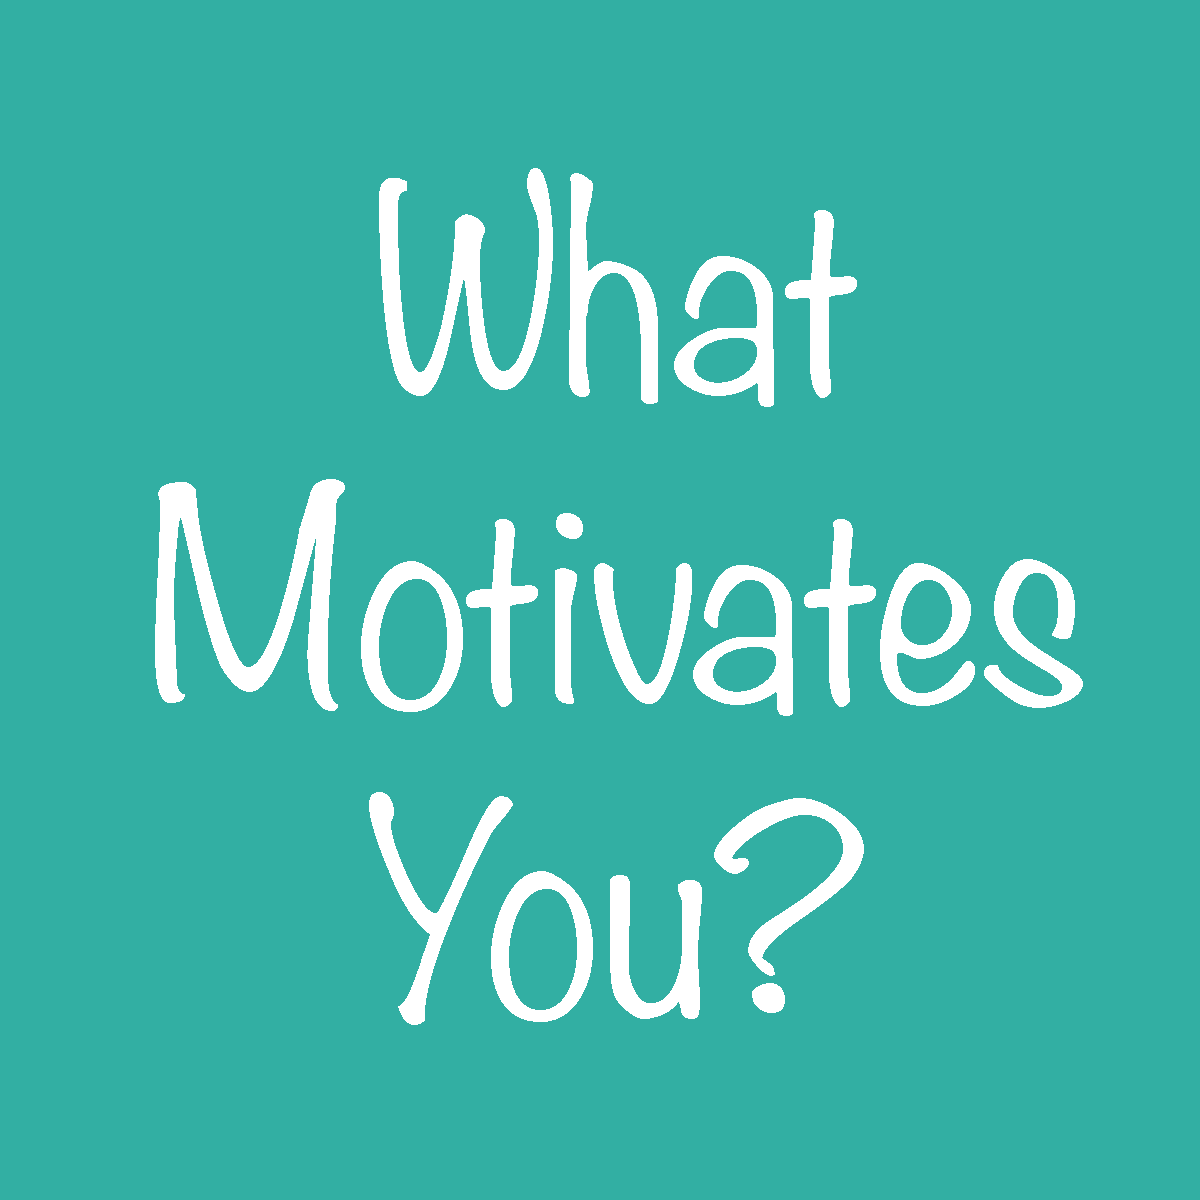 motivation lesson plans for life i was asked this question while having a discussion a friend about how she can t seem to figure out what motivates her husband